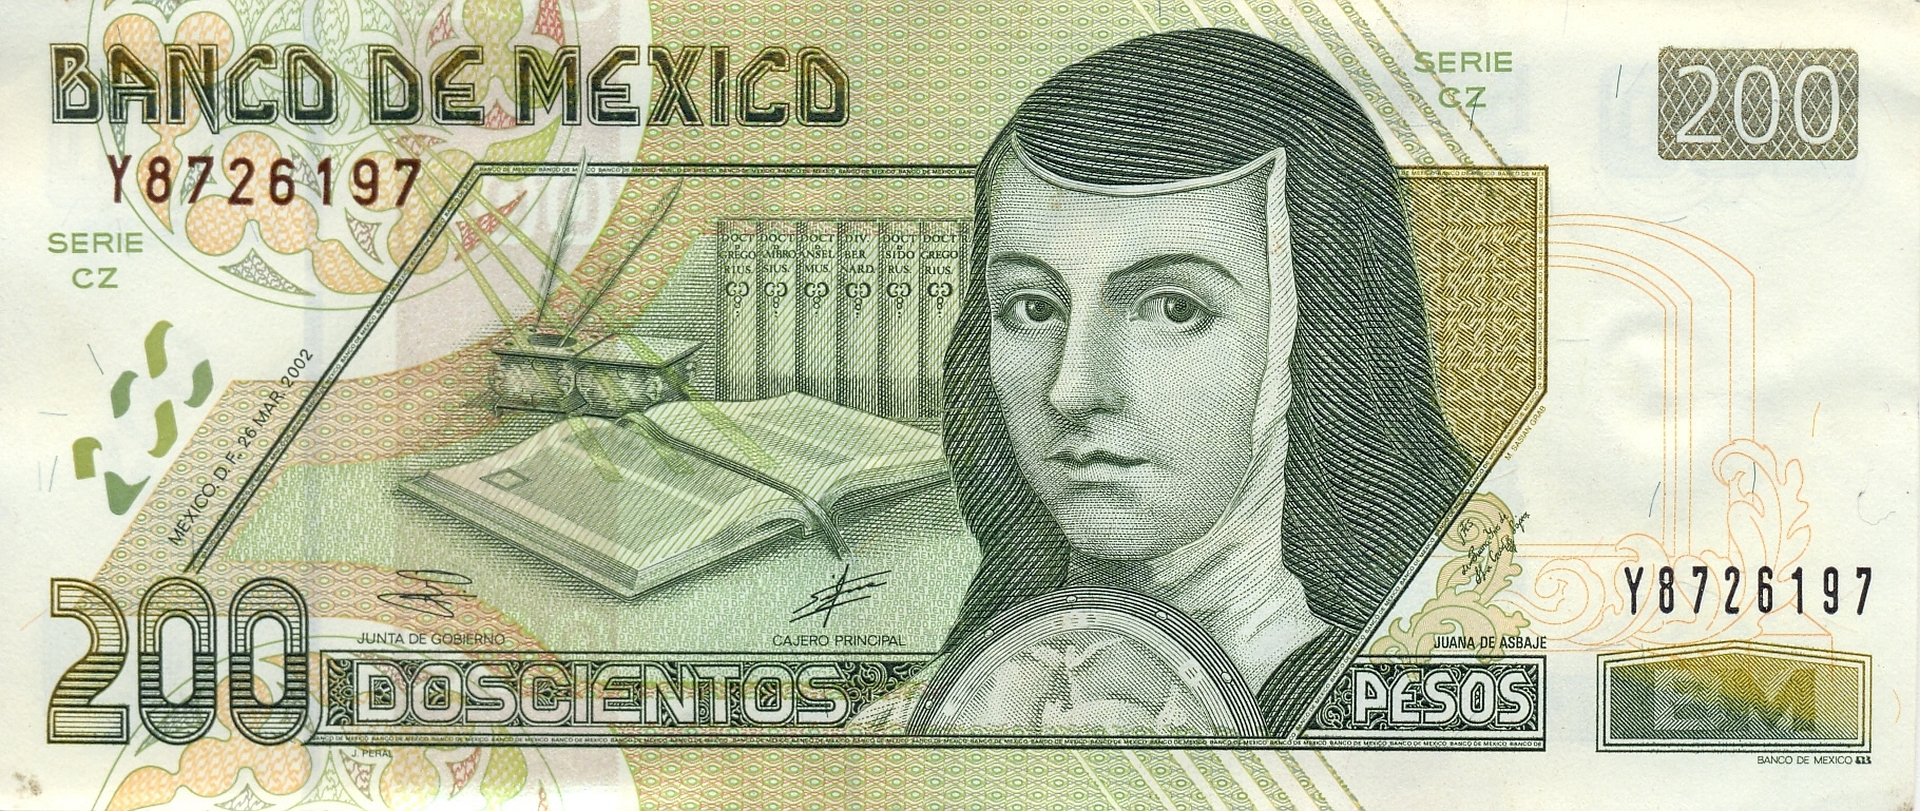 Mexico S Peso Broke The 16 Per Dollar Barrier For First Time In Early Trading On Monday Reuters Data Showed